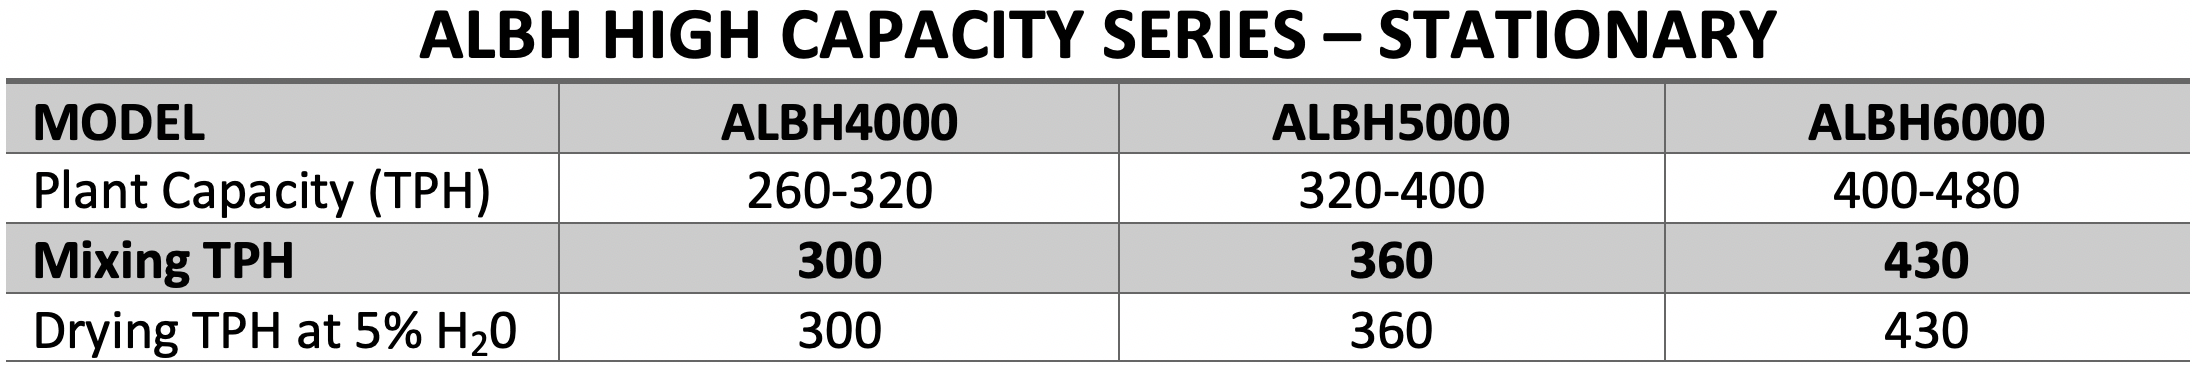 ALBHHighCapacitySeriesProductionRates.png